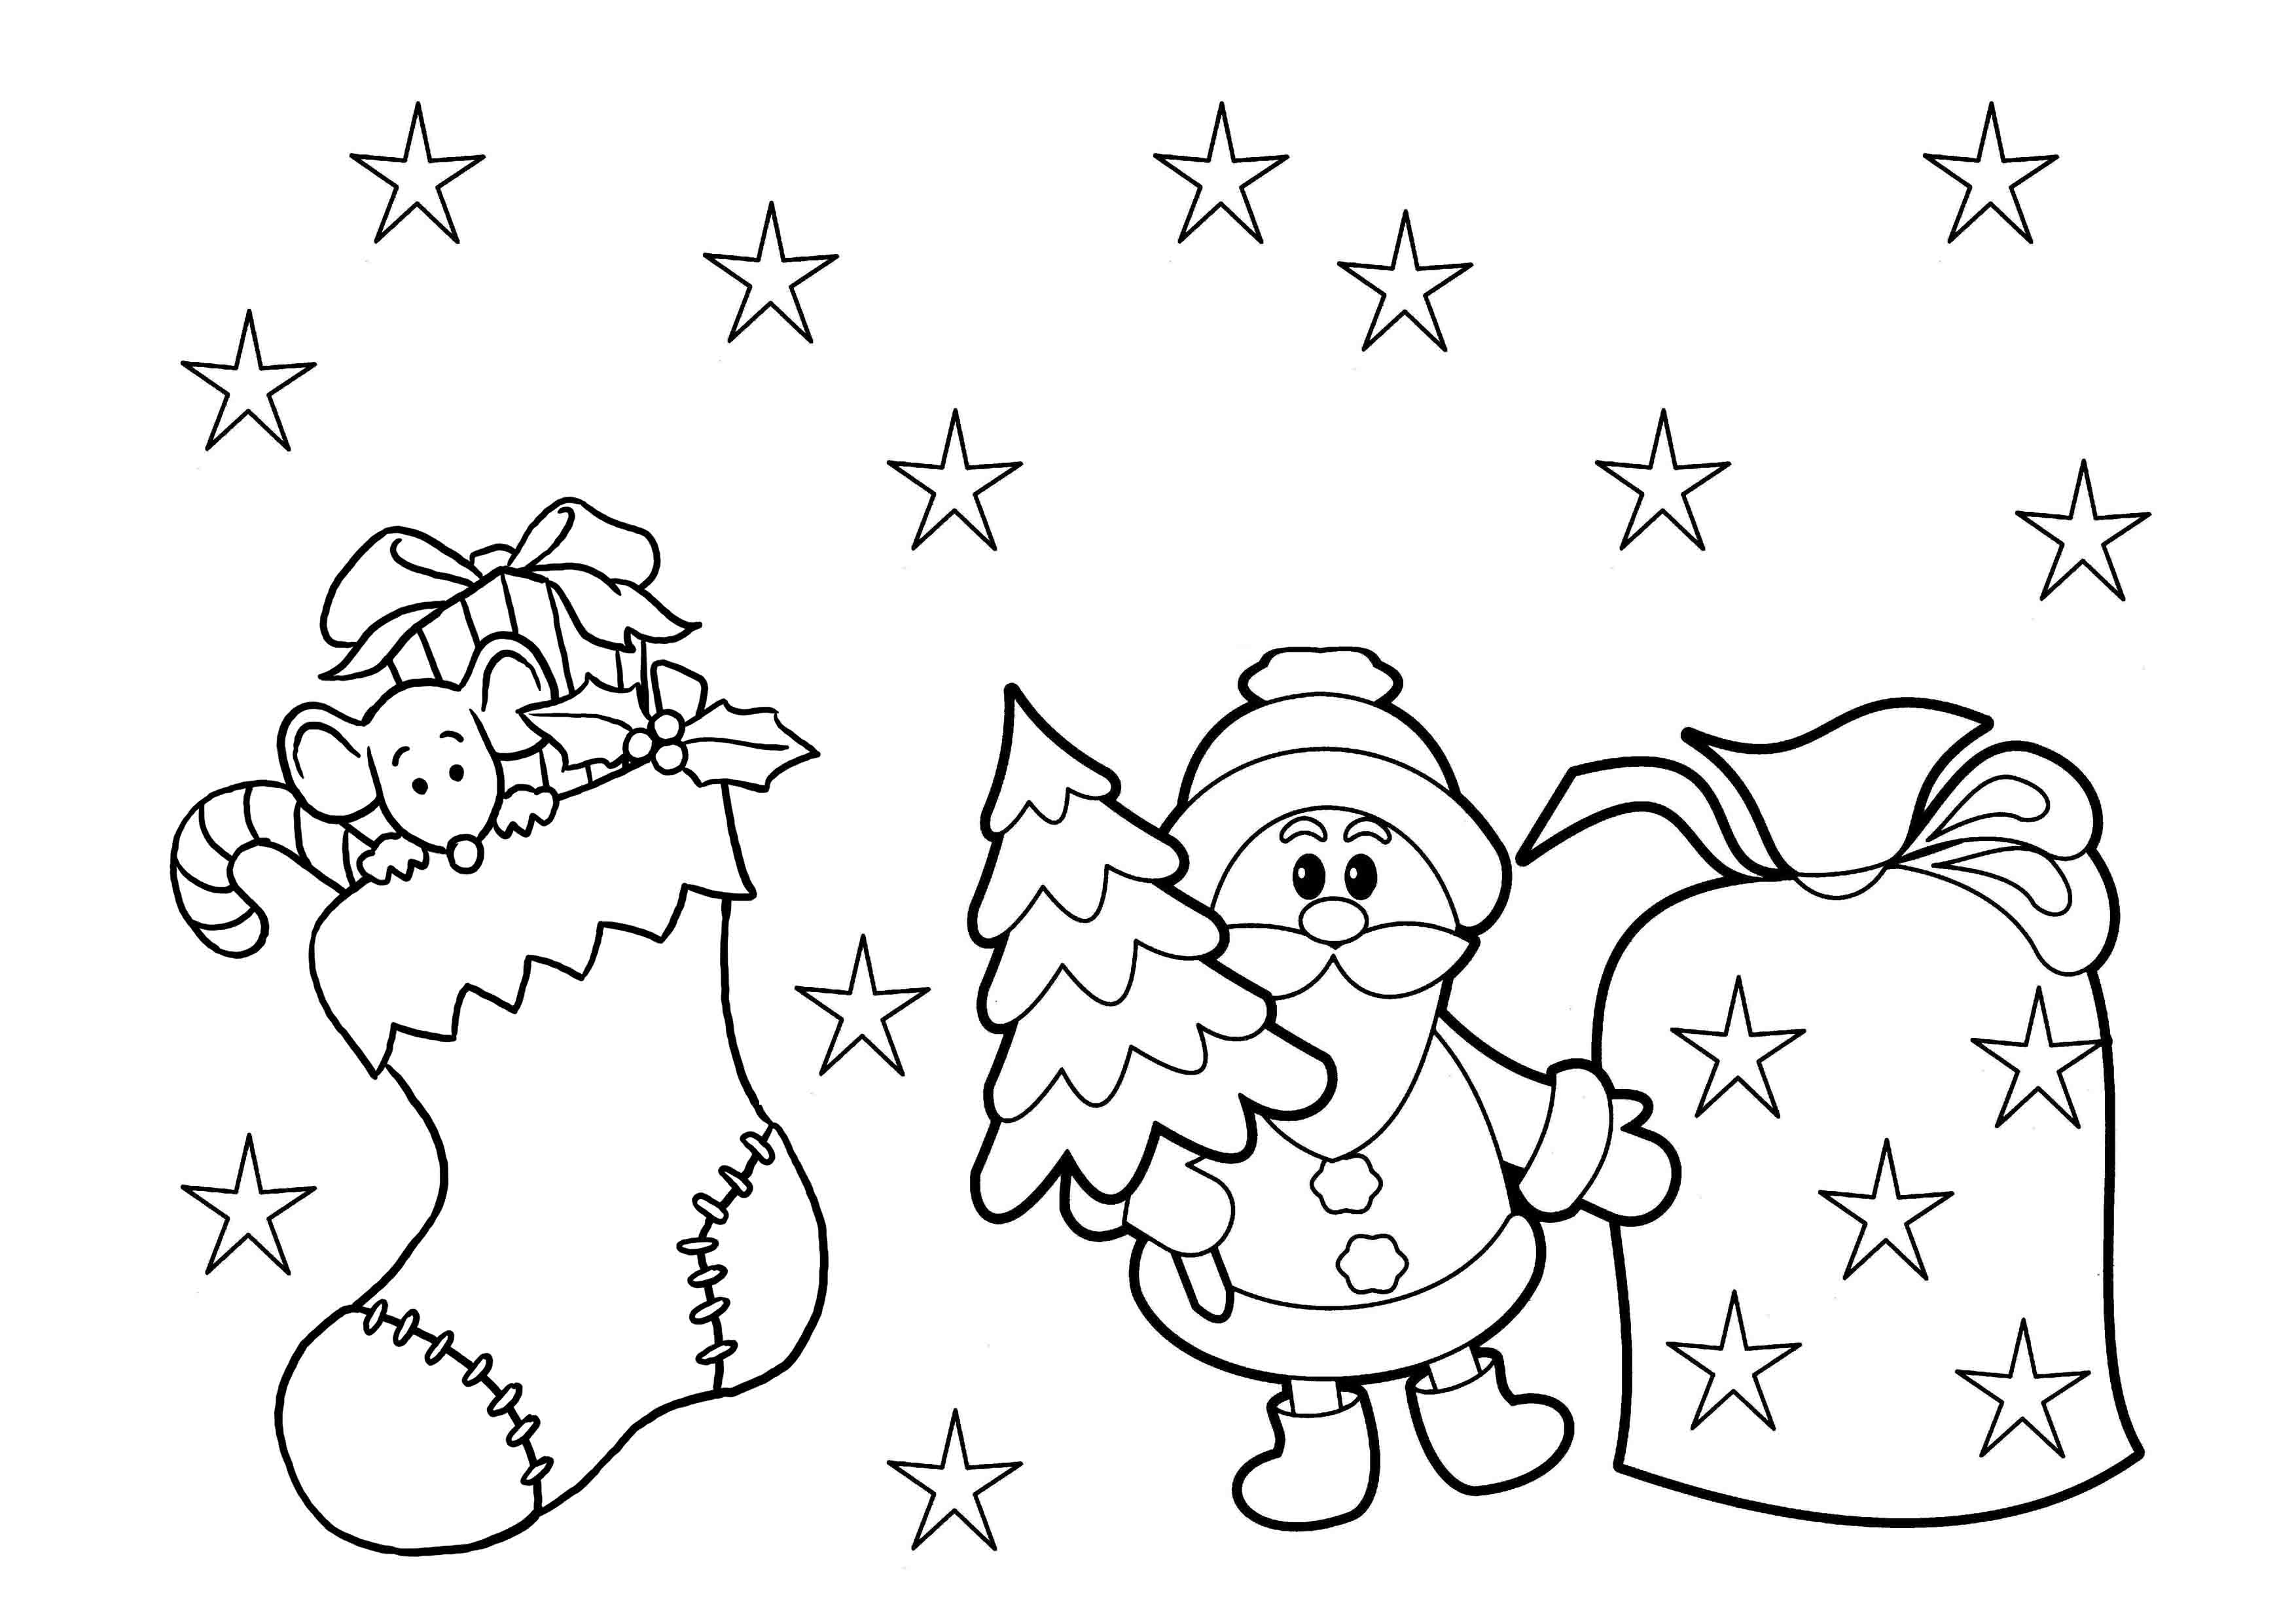 Christmas Coloring Pages For Kids Printable  Print & Download Printable Christmas Coloring Pages for Kids